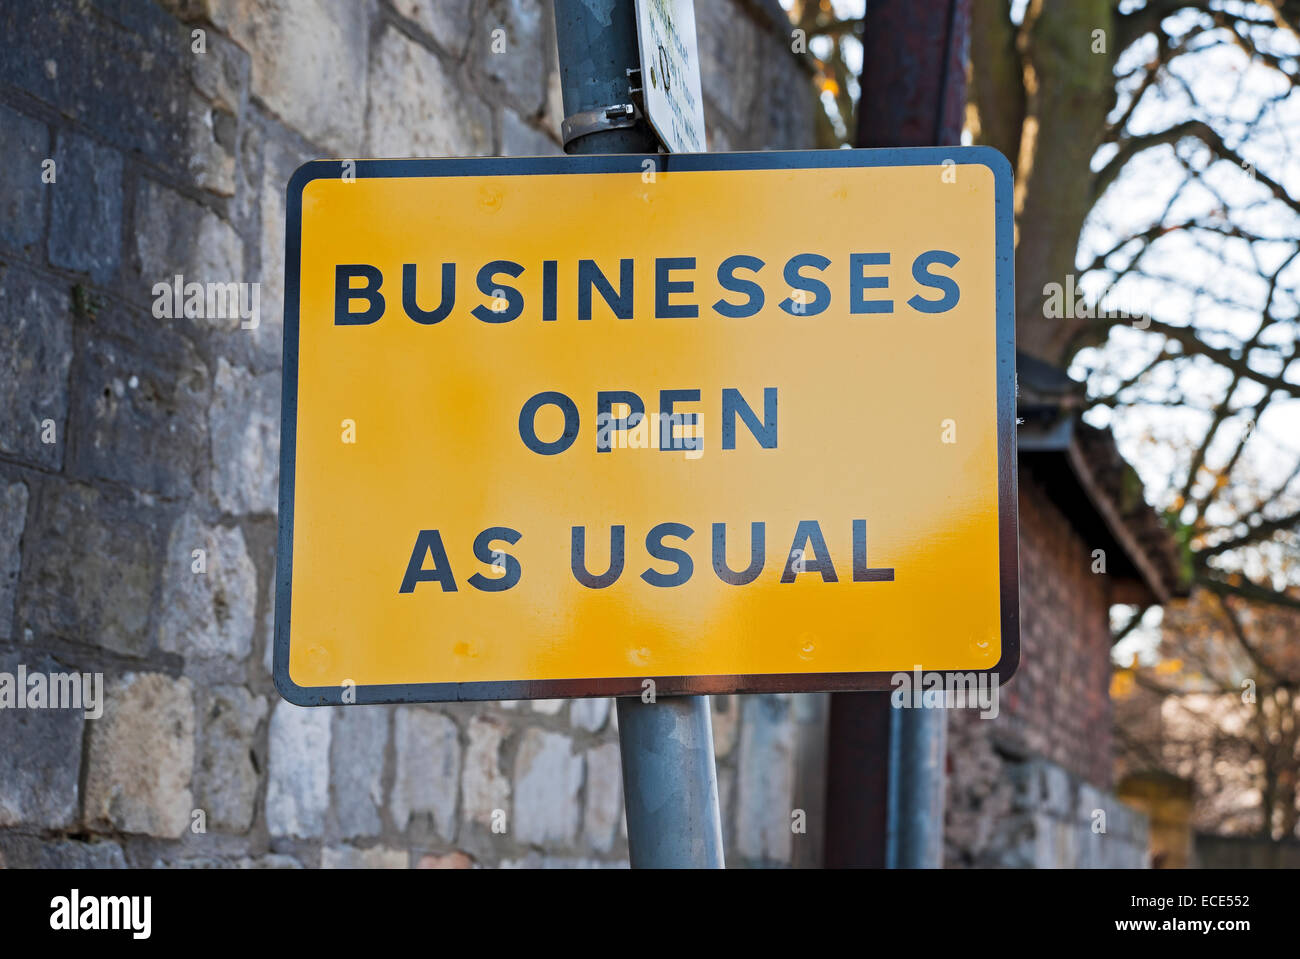 Businesses open as usual street sign England UK United Kingdom GB Great Britain - Stock Image